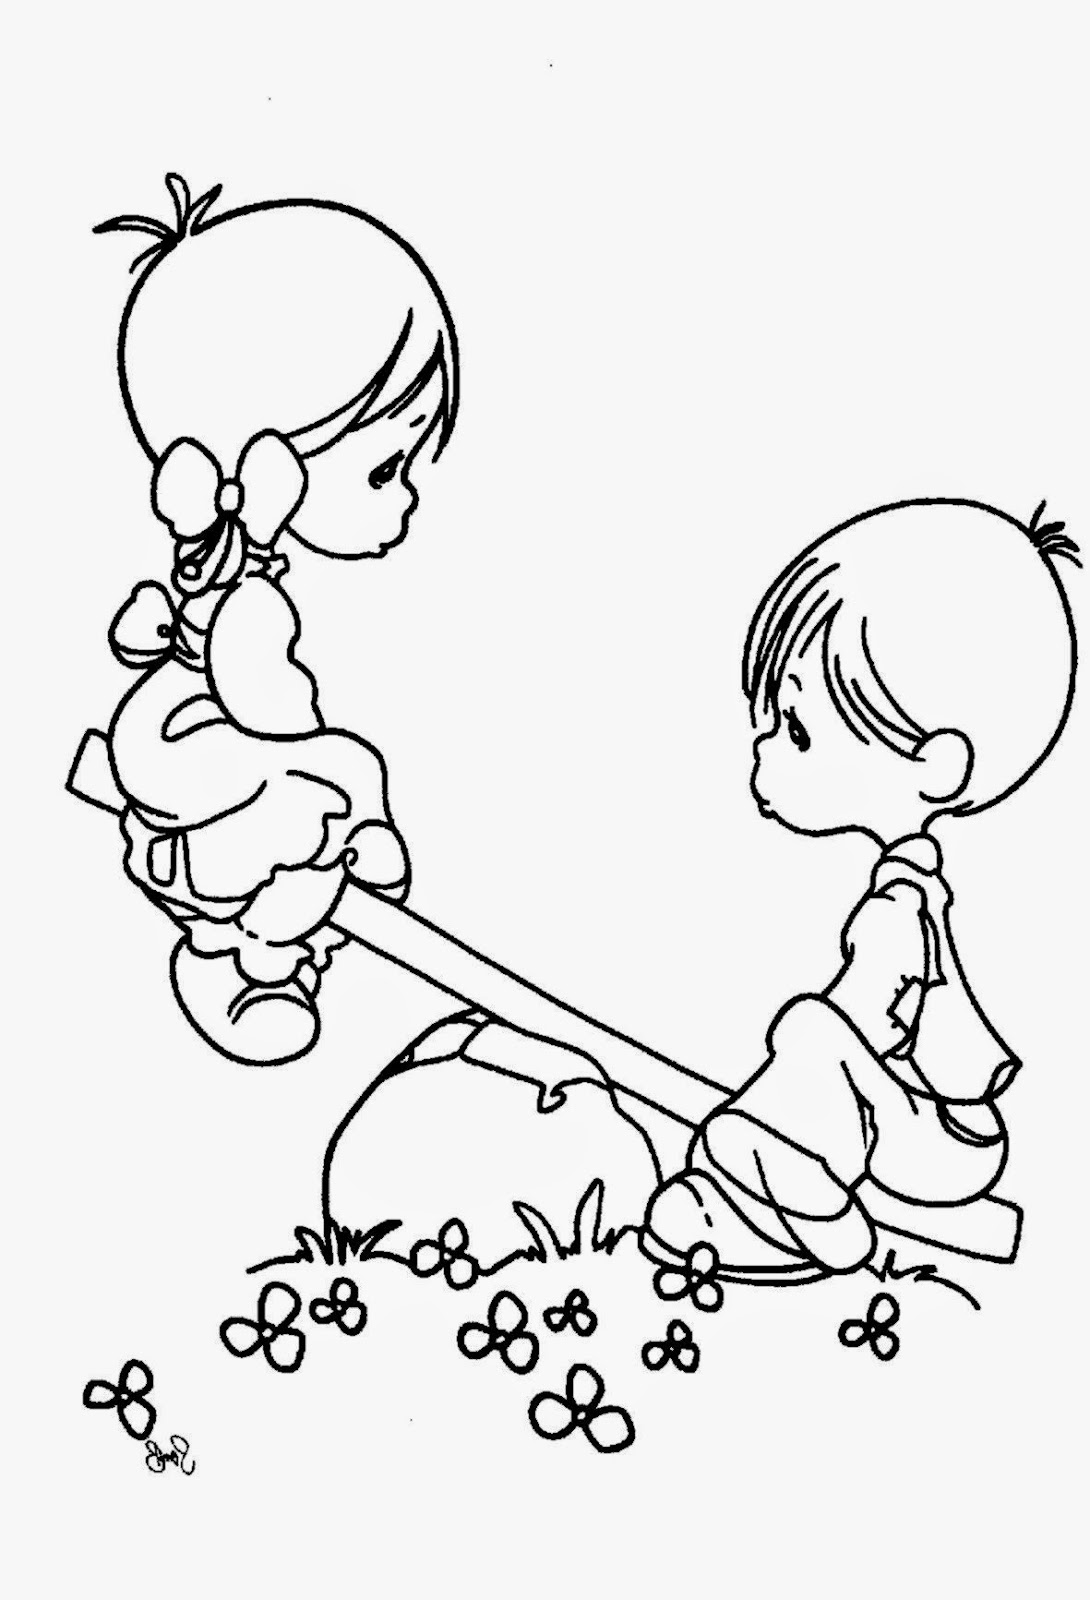 Coloring pages for children free coloring sheet for Realistic animal coloring pages